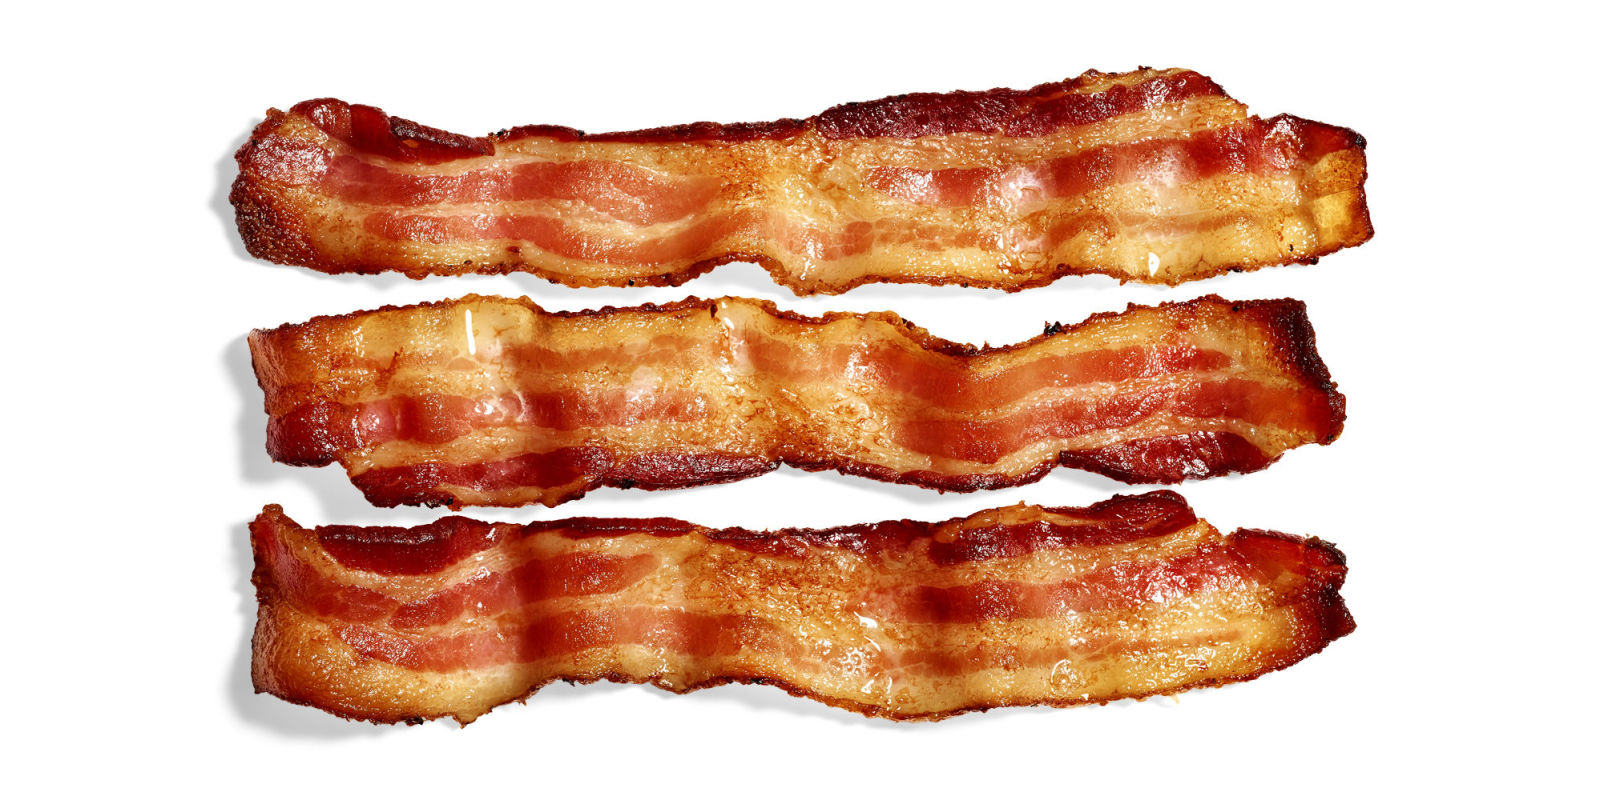 Here S What You Need To Know About Bacon Health